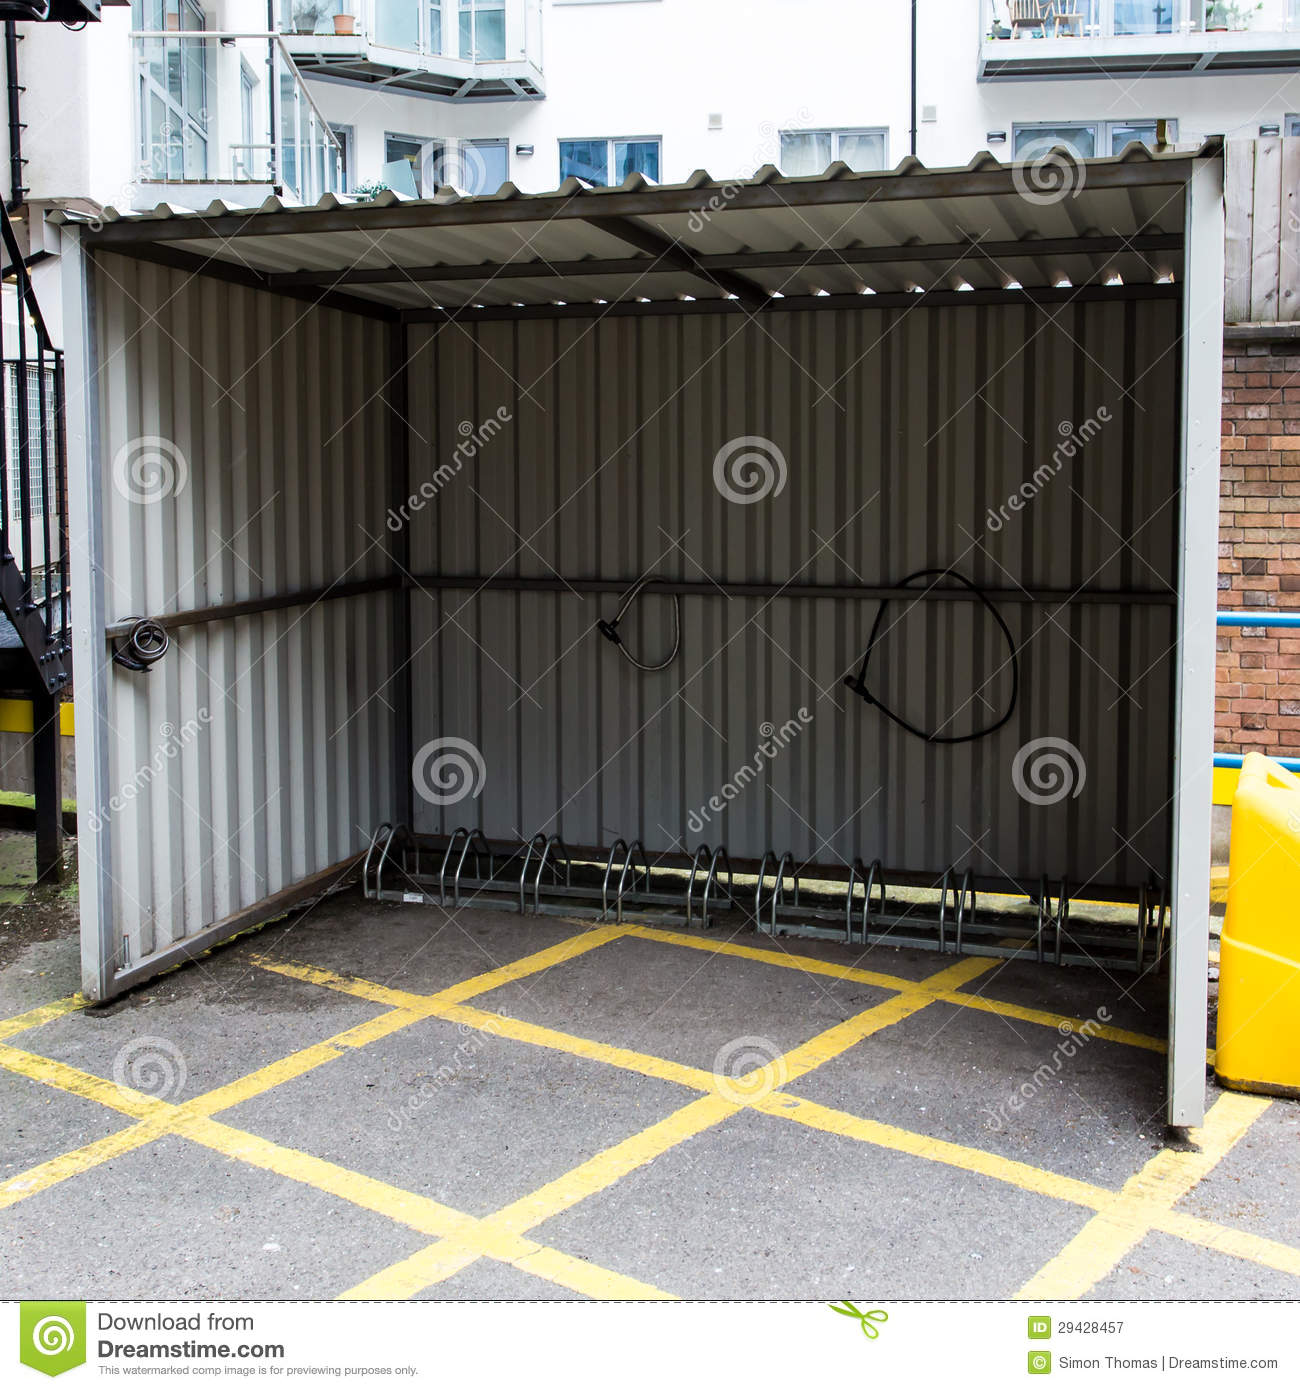 Metal Bicycle Shelters : Bike shelter royalty free stock photography image